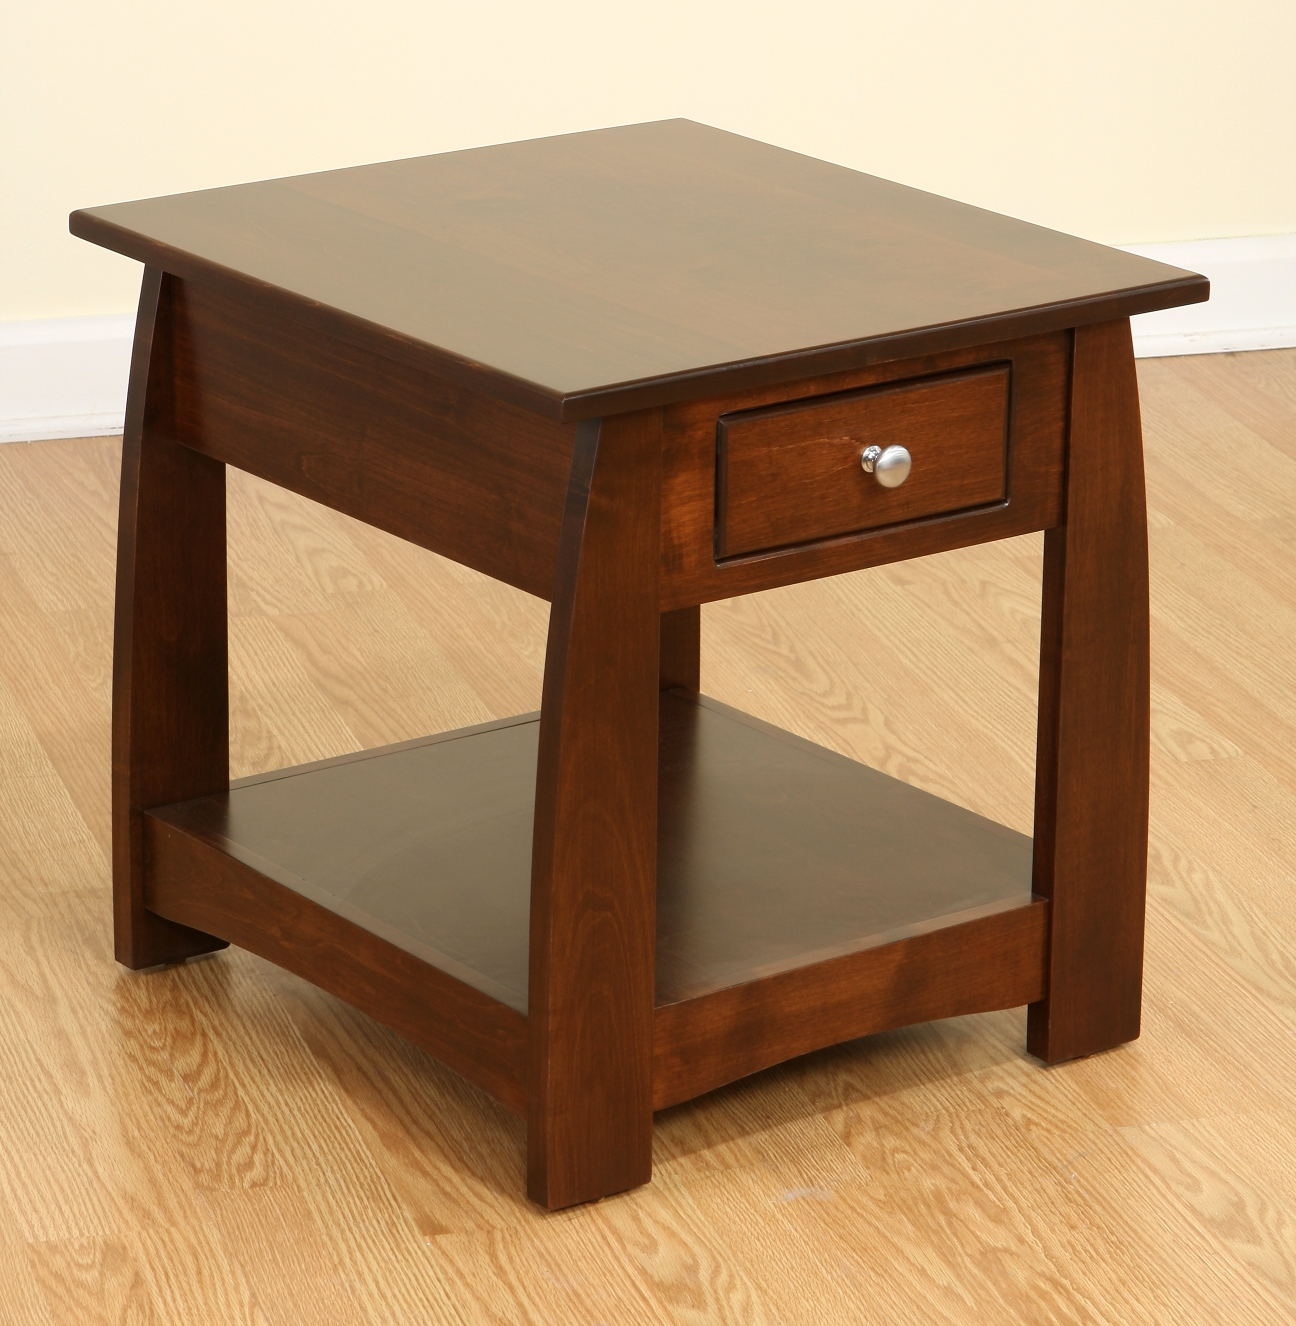 Decor home ideas end tables costa rican furniture for Accent furnitureable